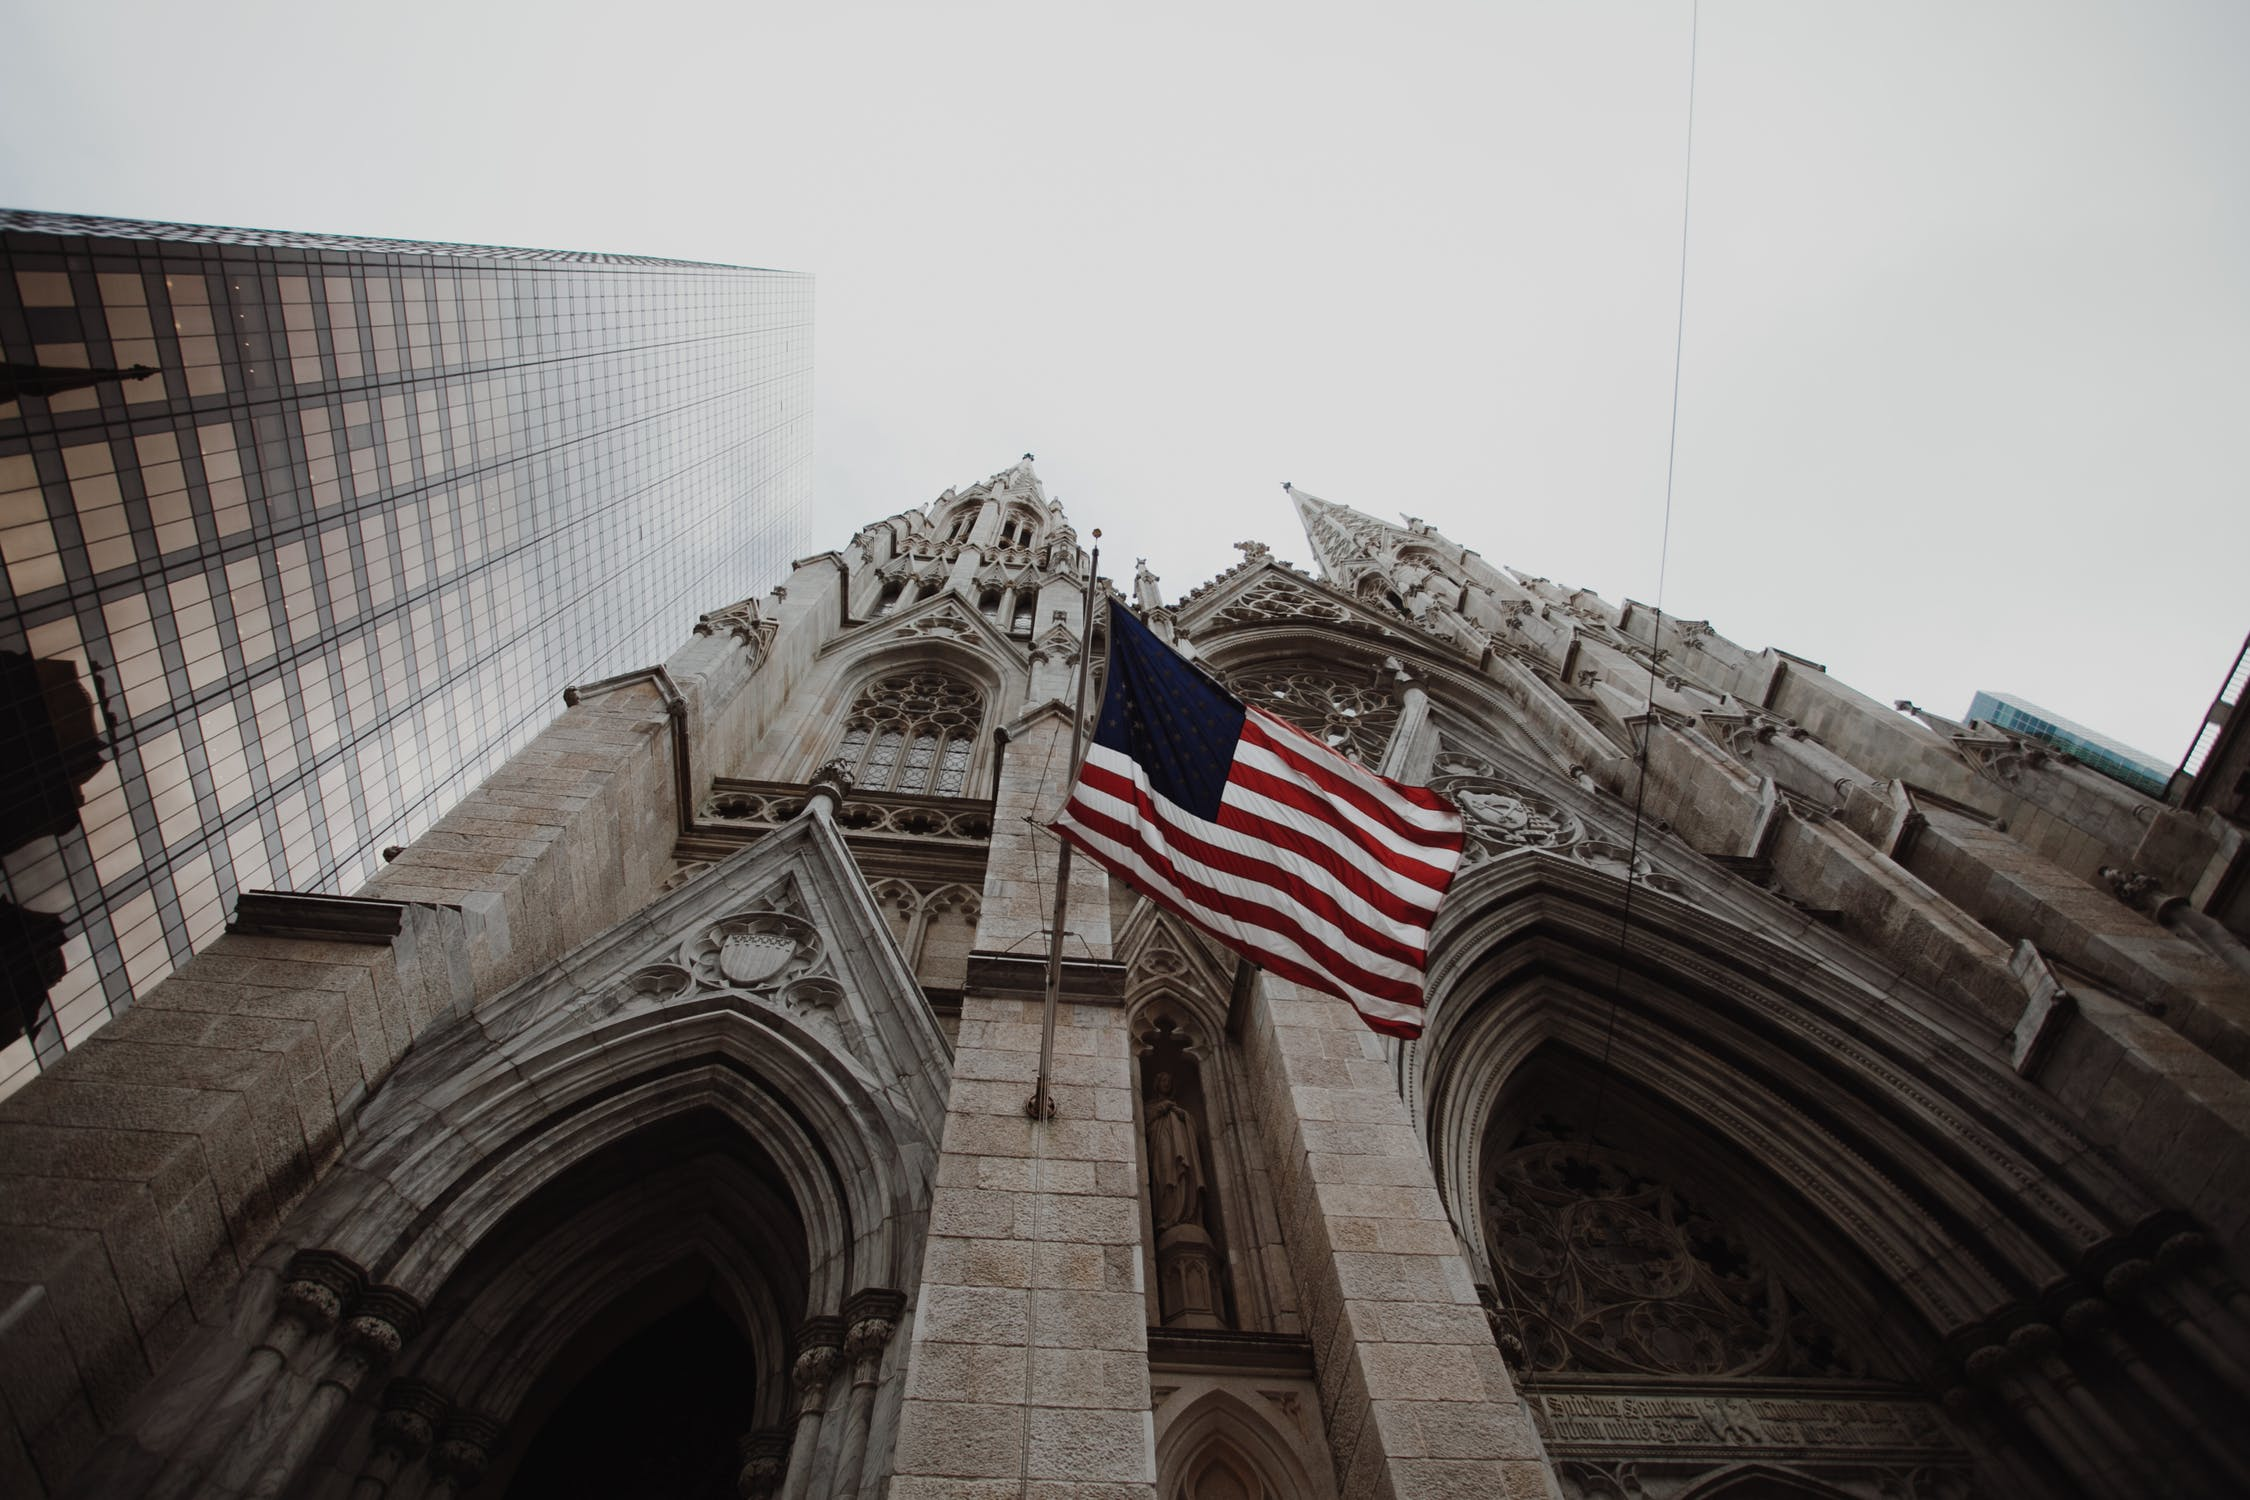 Church with American flag